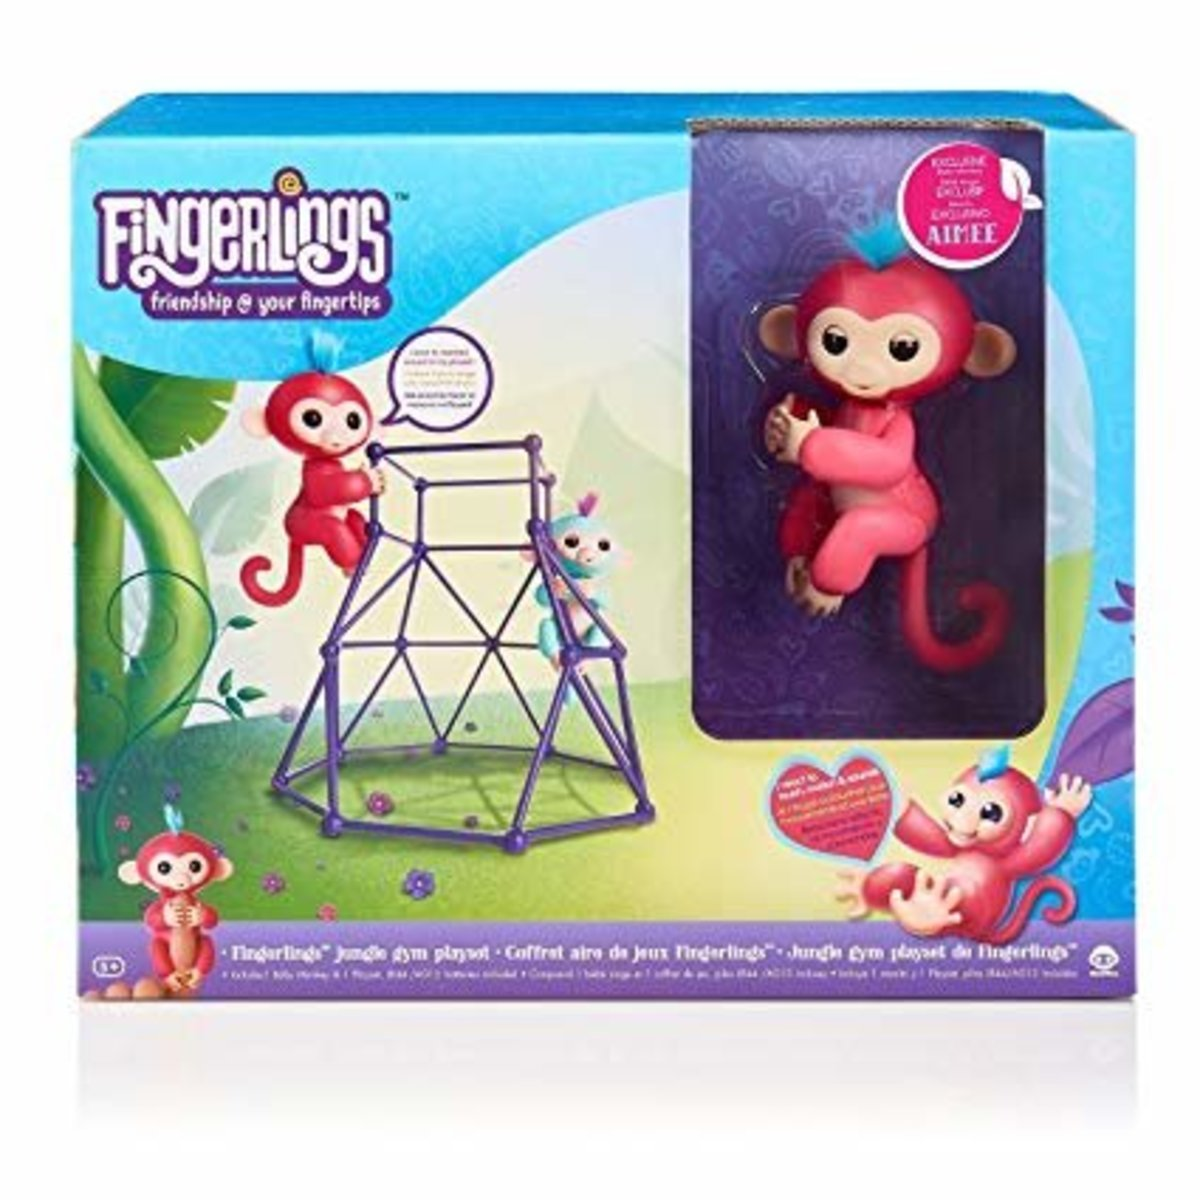 Fingerlings Playset with 1 Monkey- Jungle Gym